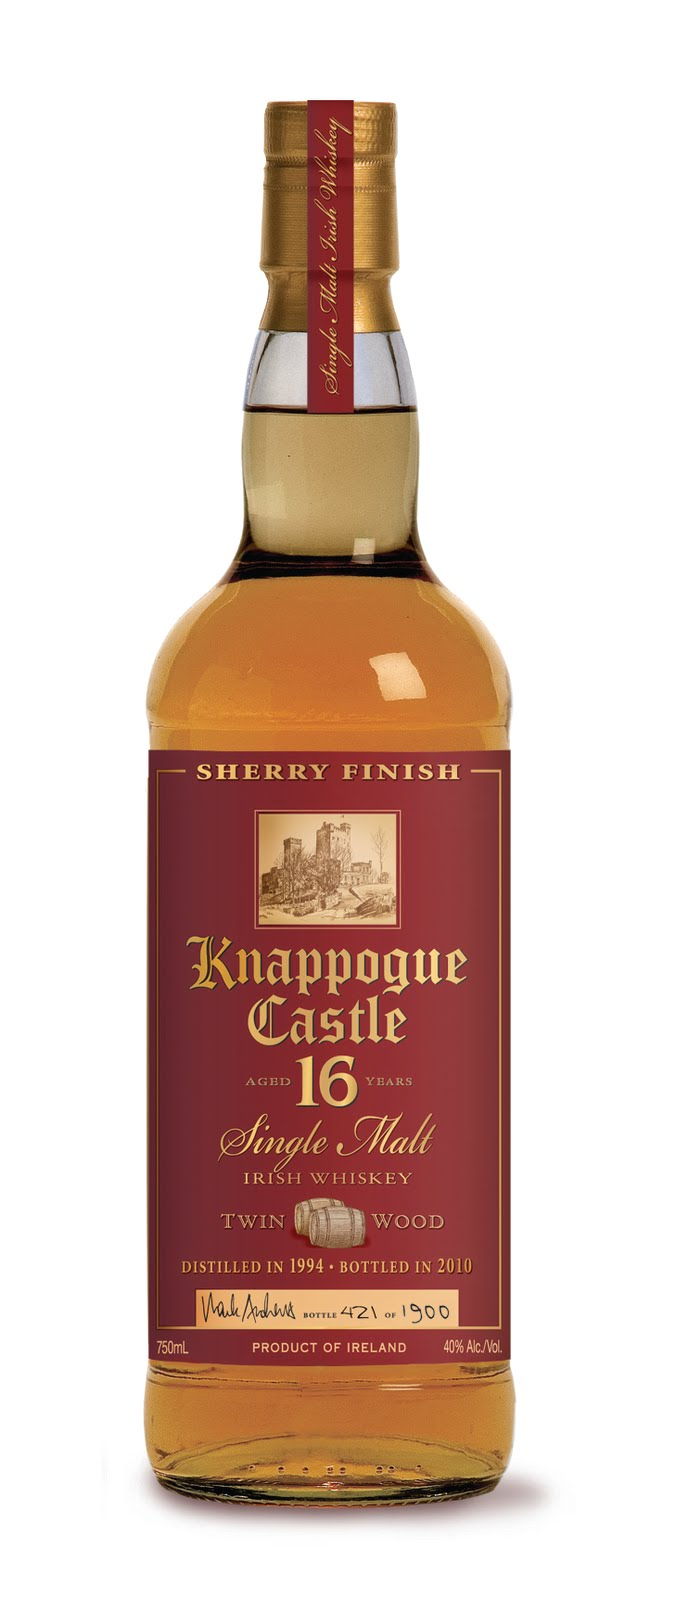 Knappogue Castle Twin Wood Single Malt Irish Whiskey 16 Years Old (2014)